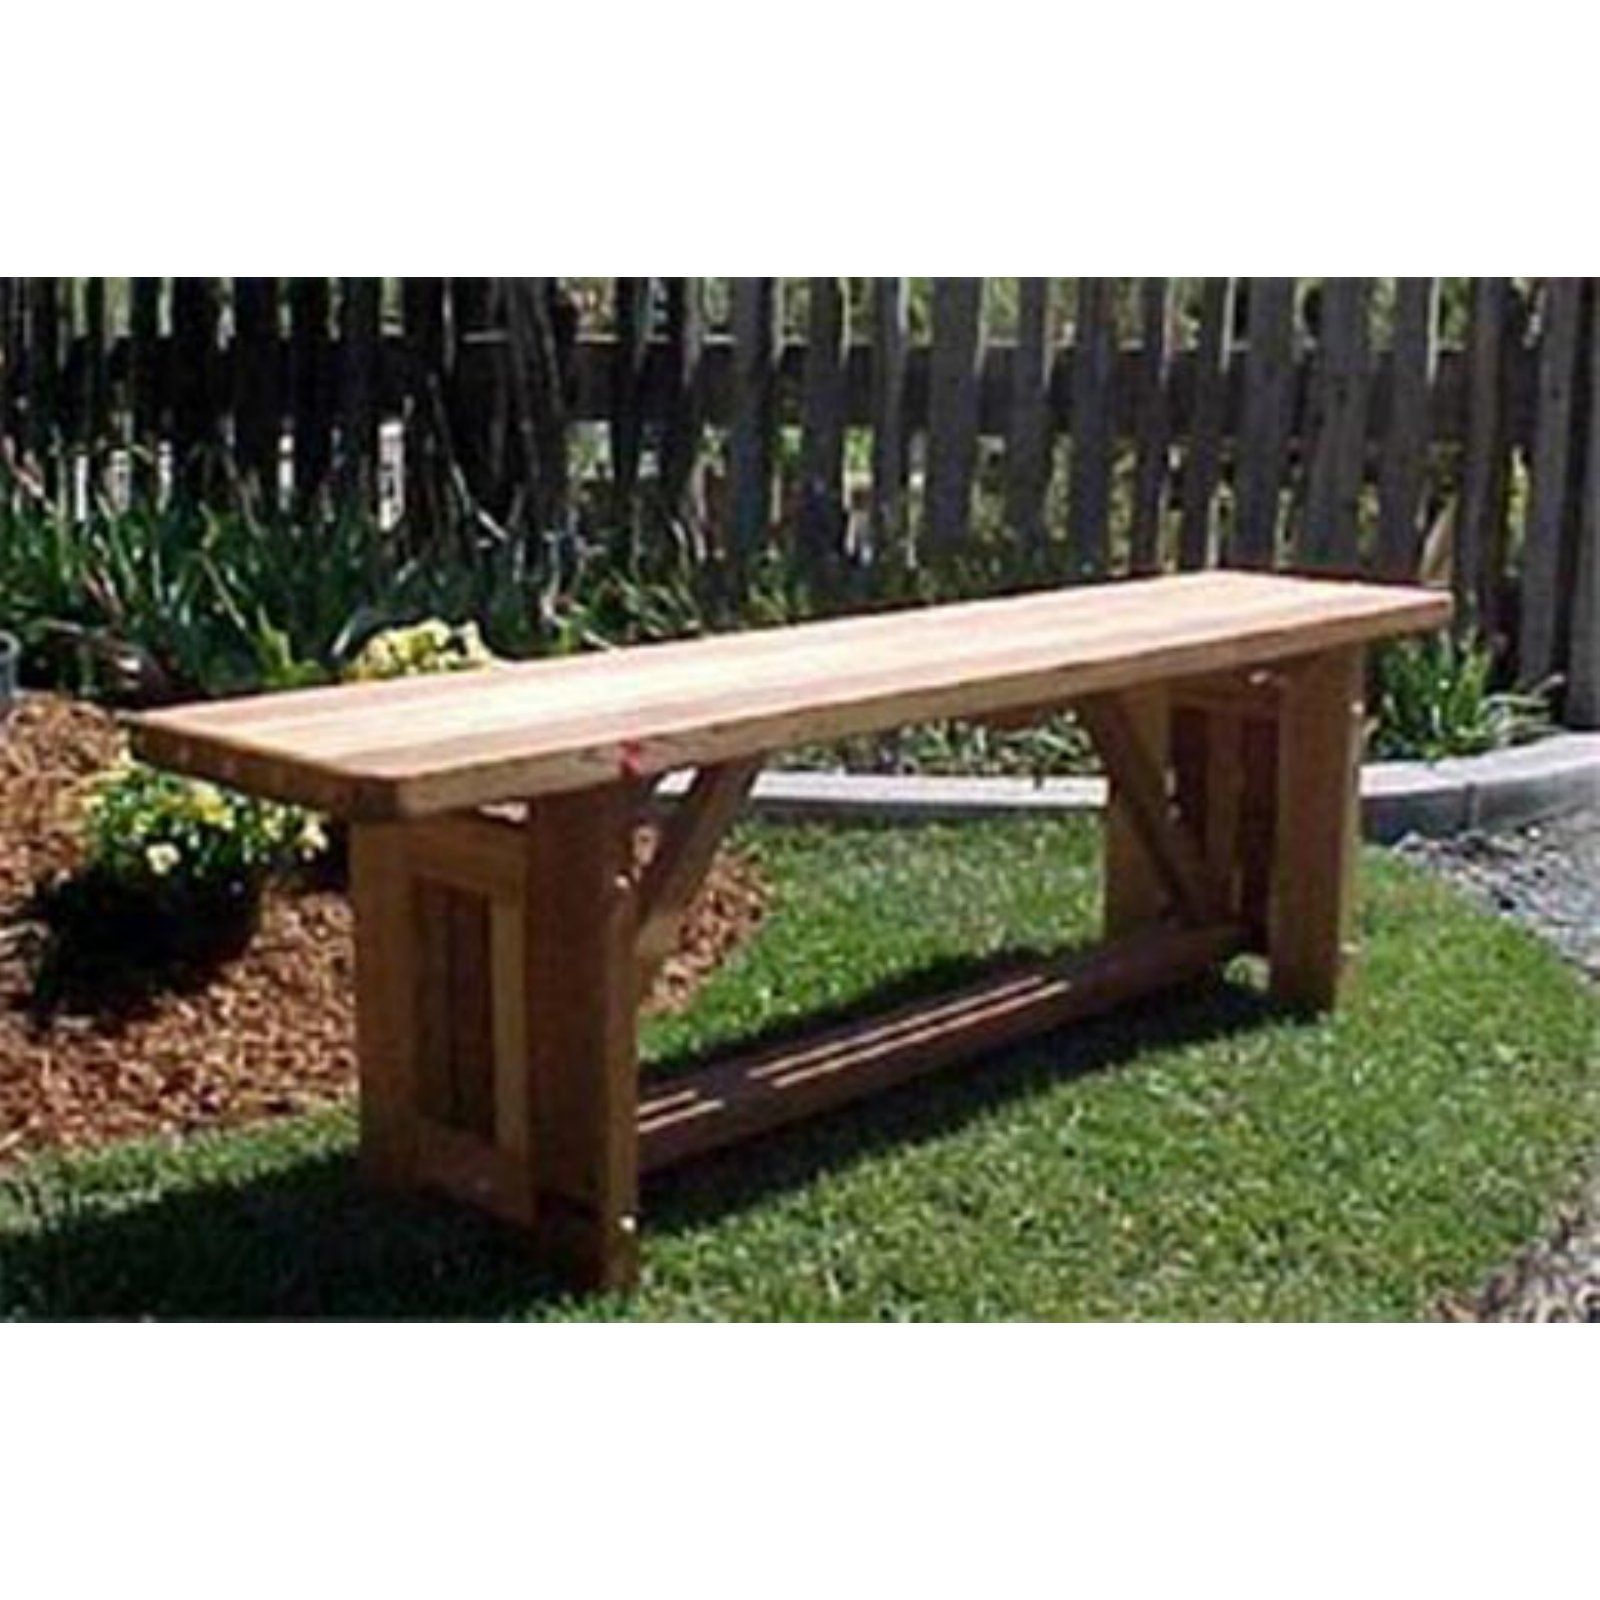 Peachy Outdoor Wood Country Cabbage Hill Backless Bench In 2019 Lamtechconsult Wood Chair Design Ideas Lamtechconsultcom